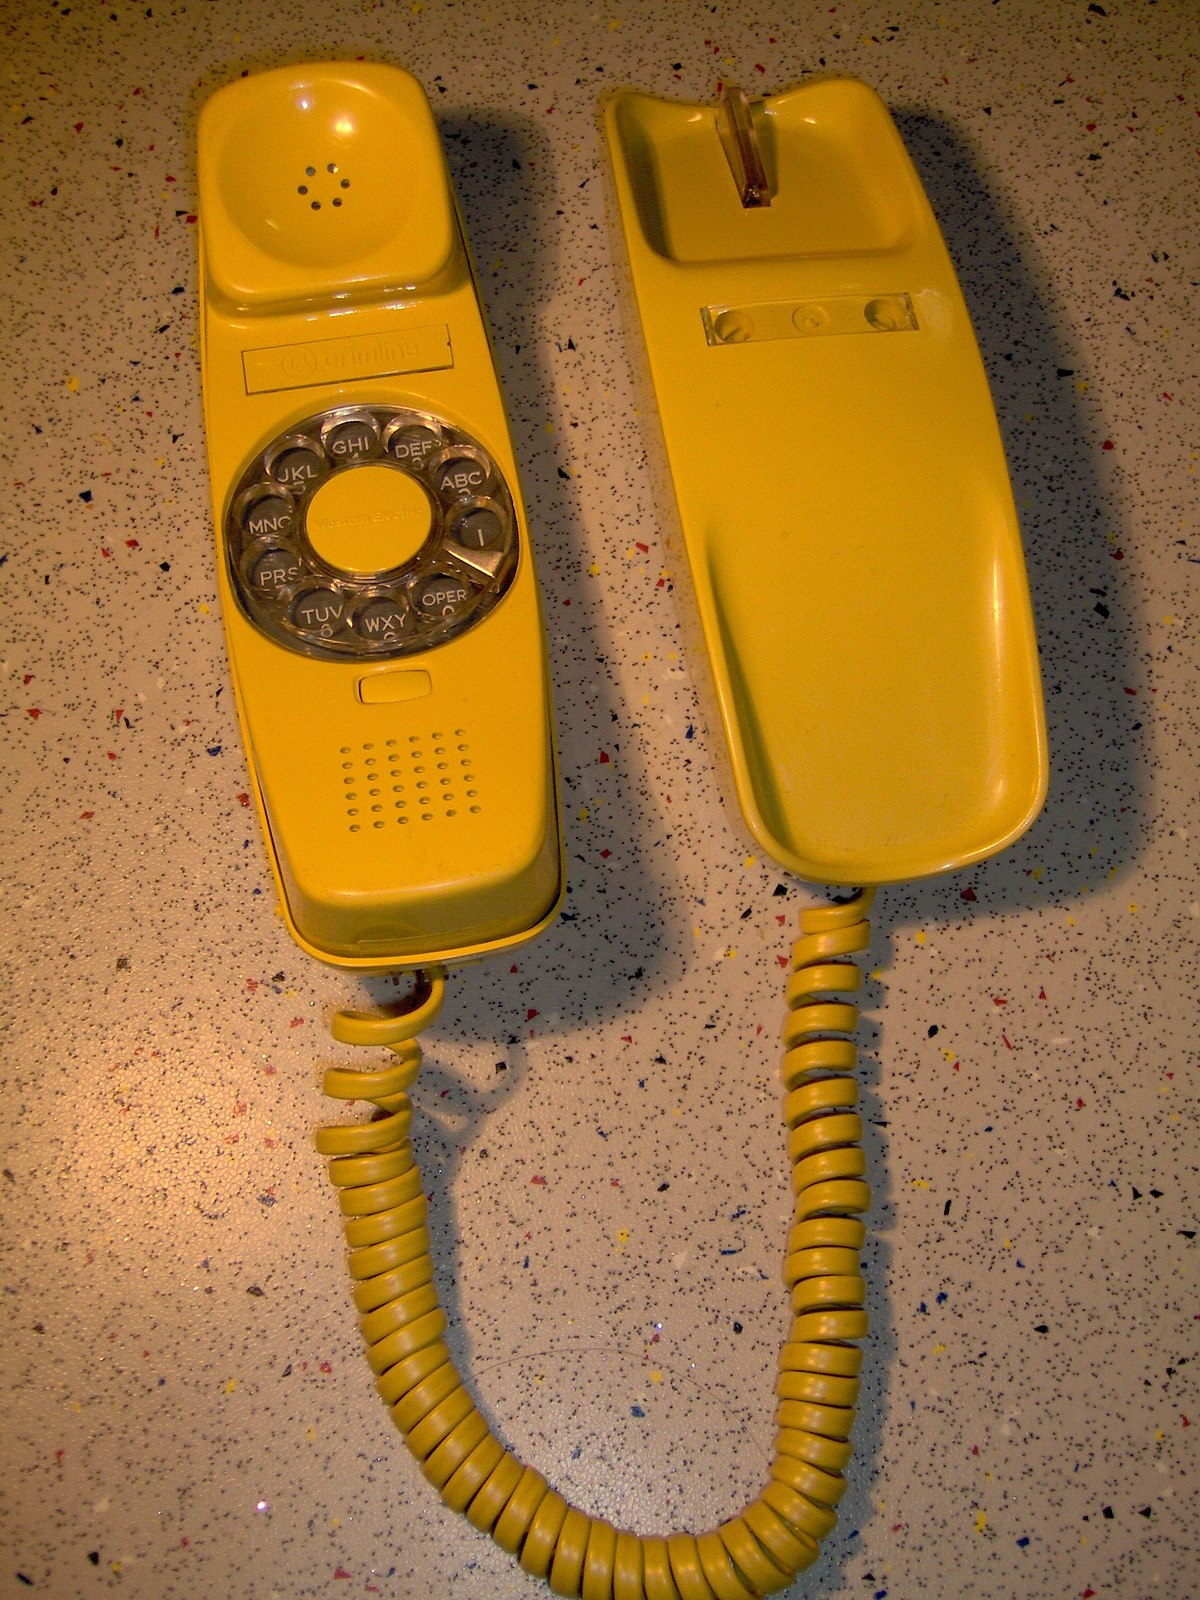 Trimline telephone - Wikipedia on